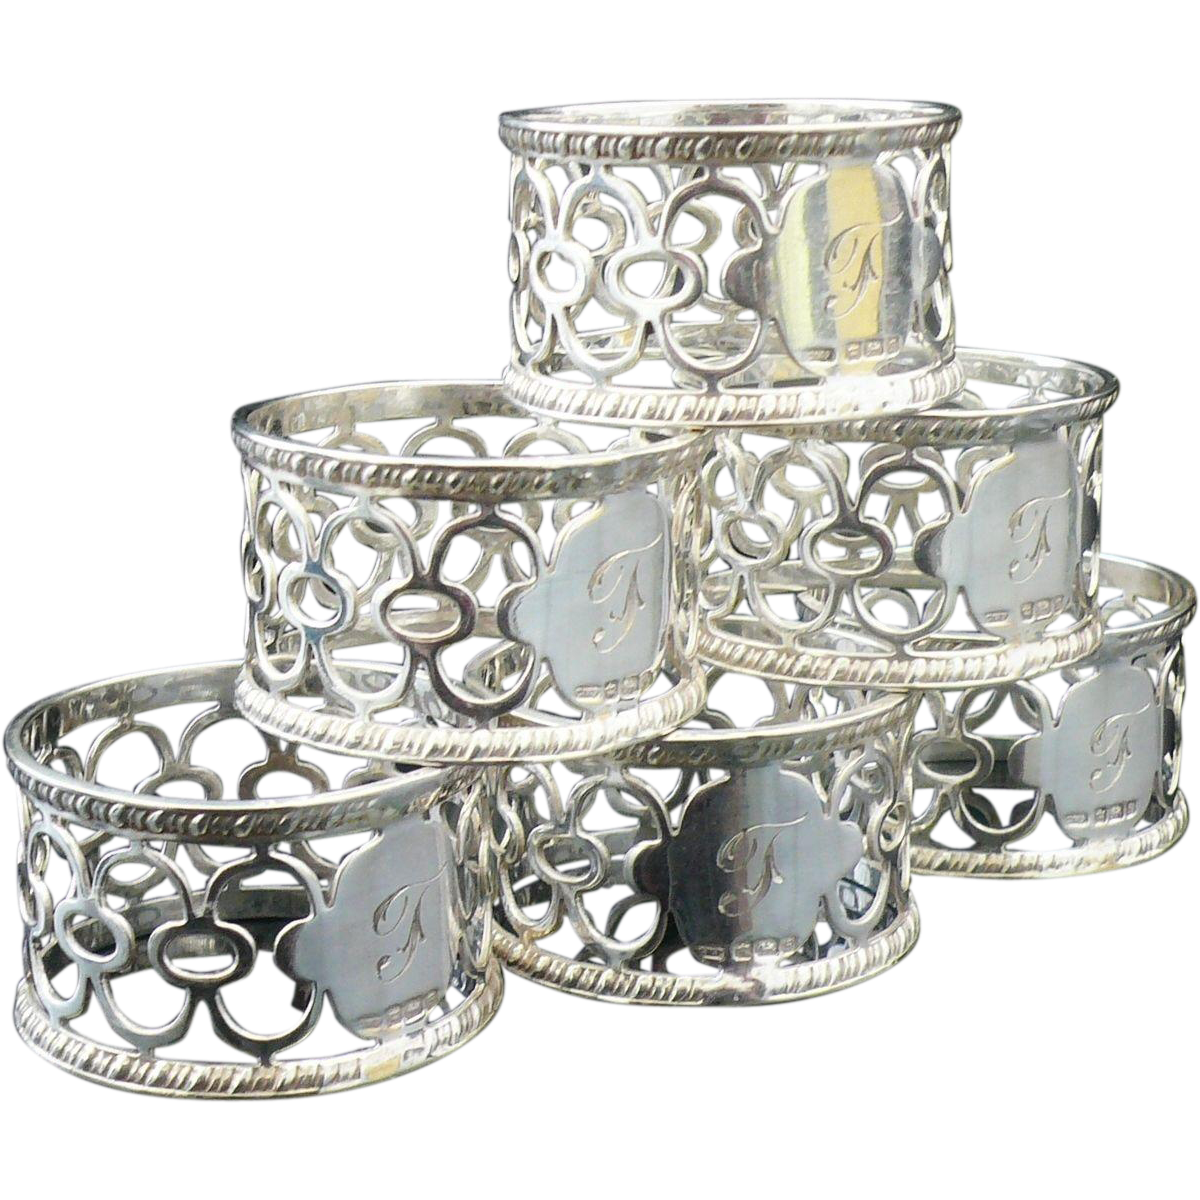 Napkin clipart metal. Set of silver rings